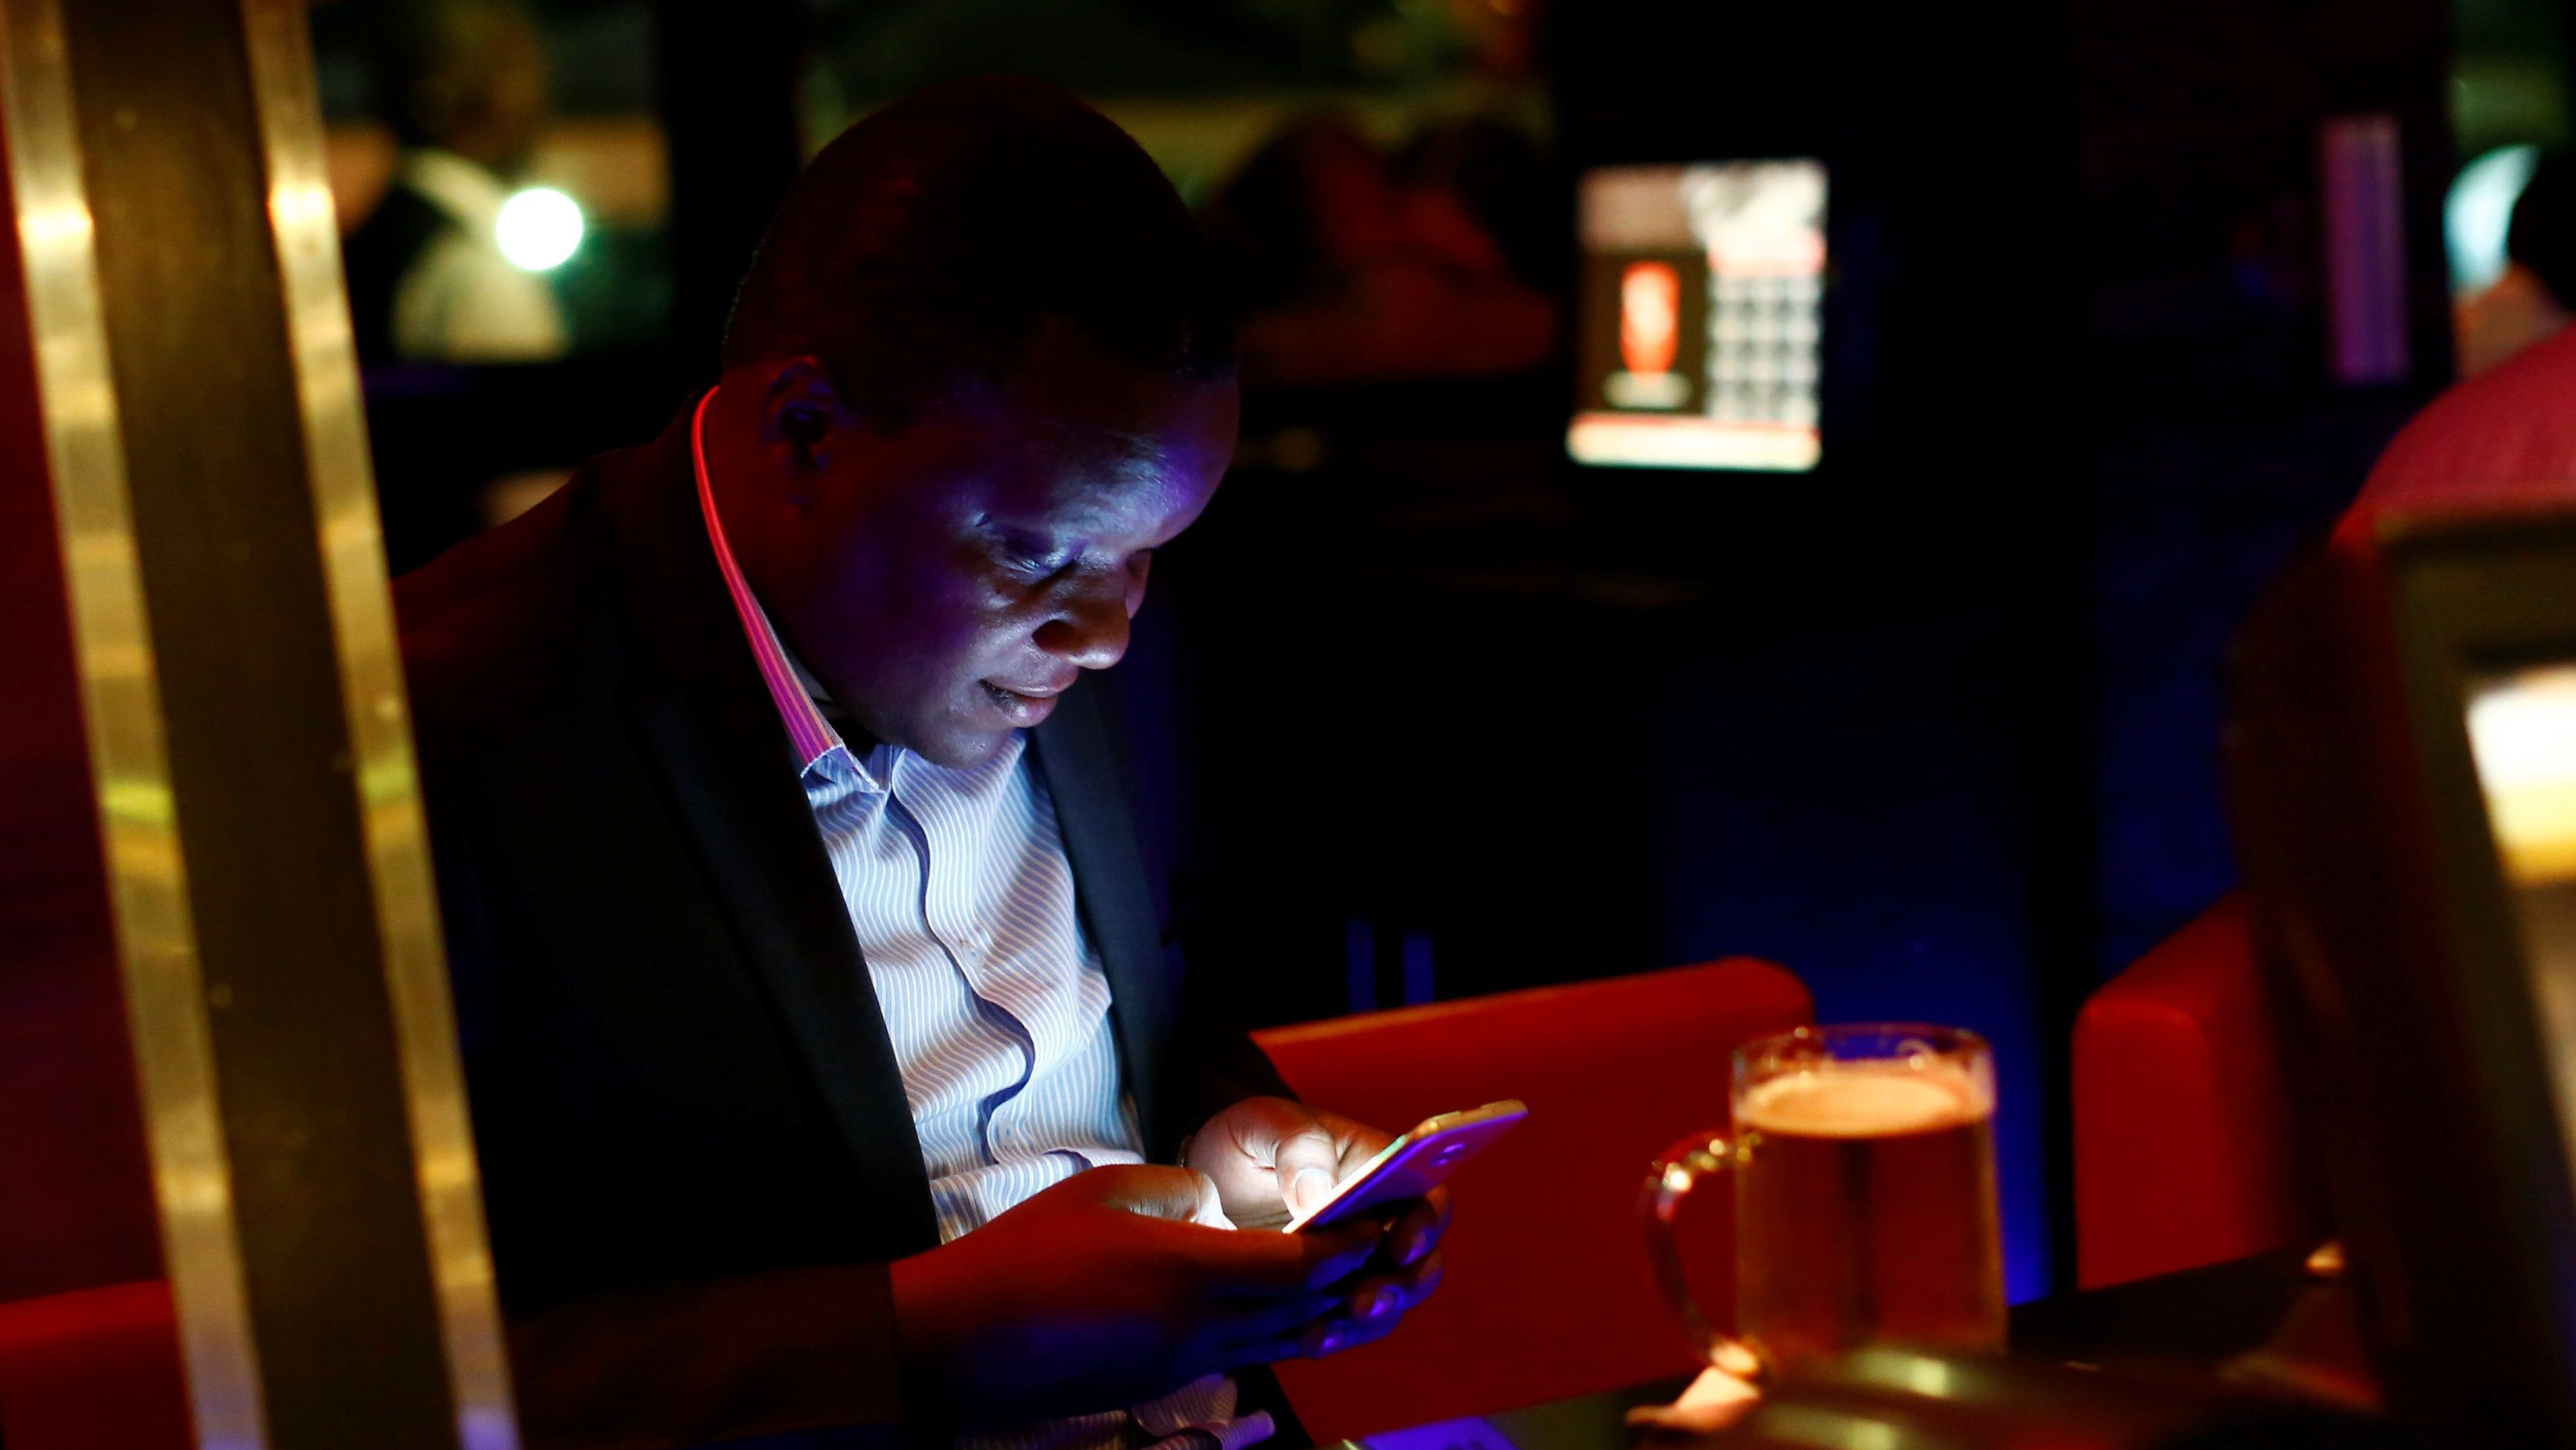 A man uses his mobile phone at the Brew Bistro & Lounge in Nairobi, Kenya, April 13, 2017.